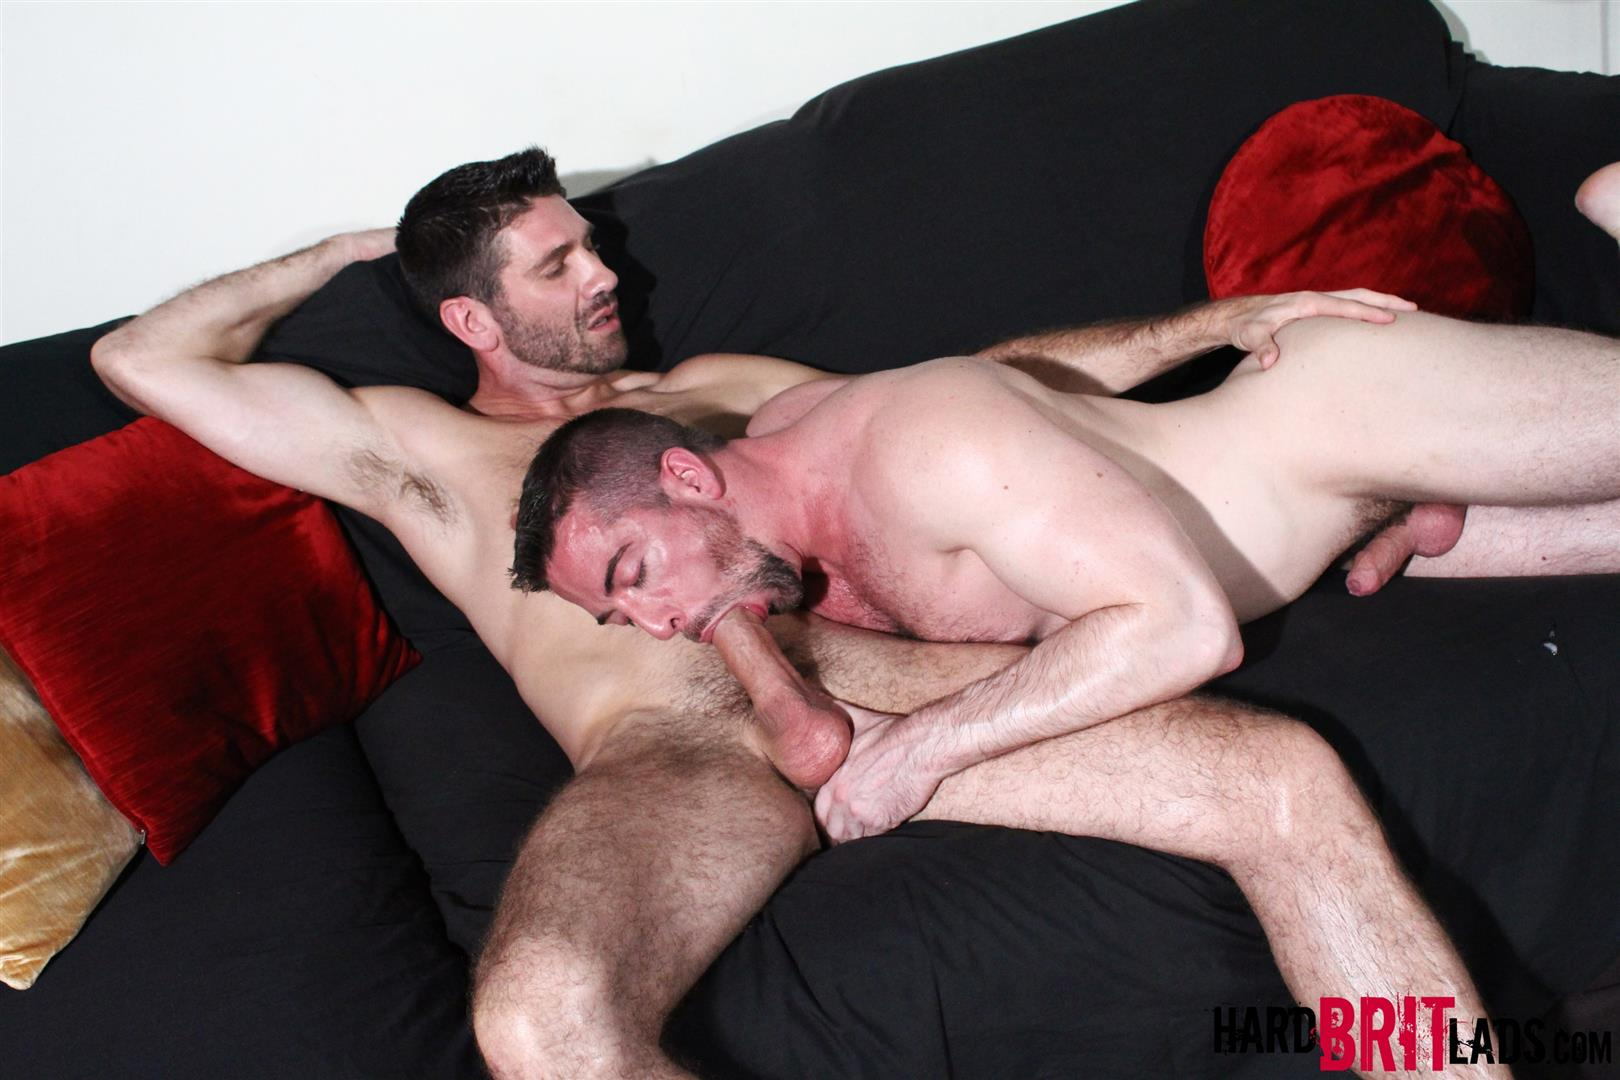 Hard-Brit-Lads-Craig-Daniel-Scott-Hunter-Hairy-Muscle-Hunks-With-Big-Uncut-Cocks-Fucking-Amateur-Gay-Porn-10 Hairy Muscle Hunks Fucking And Eating Cum From Big Uncut Cocks